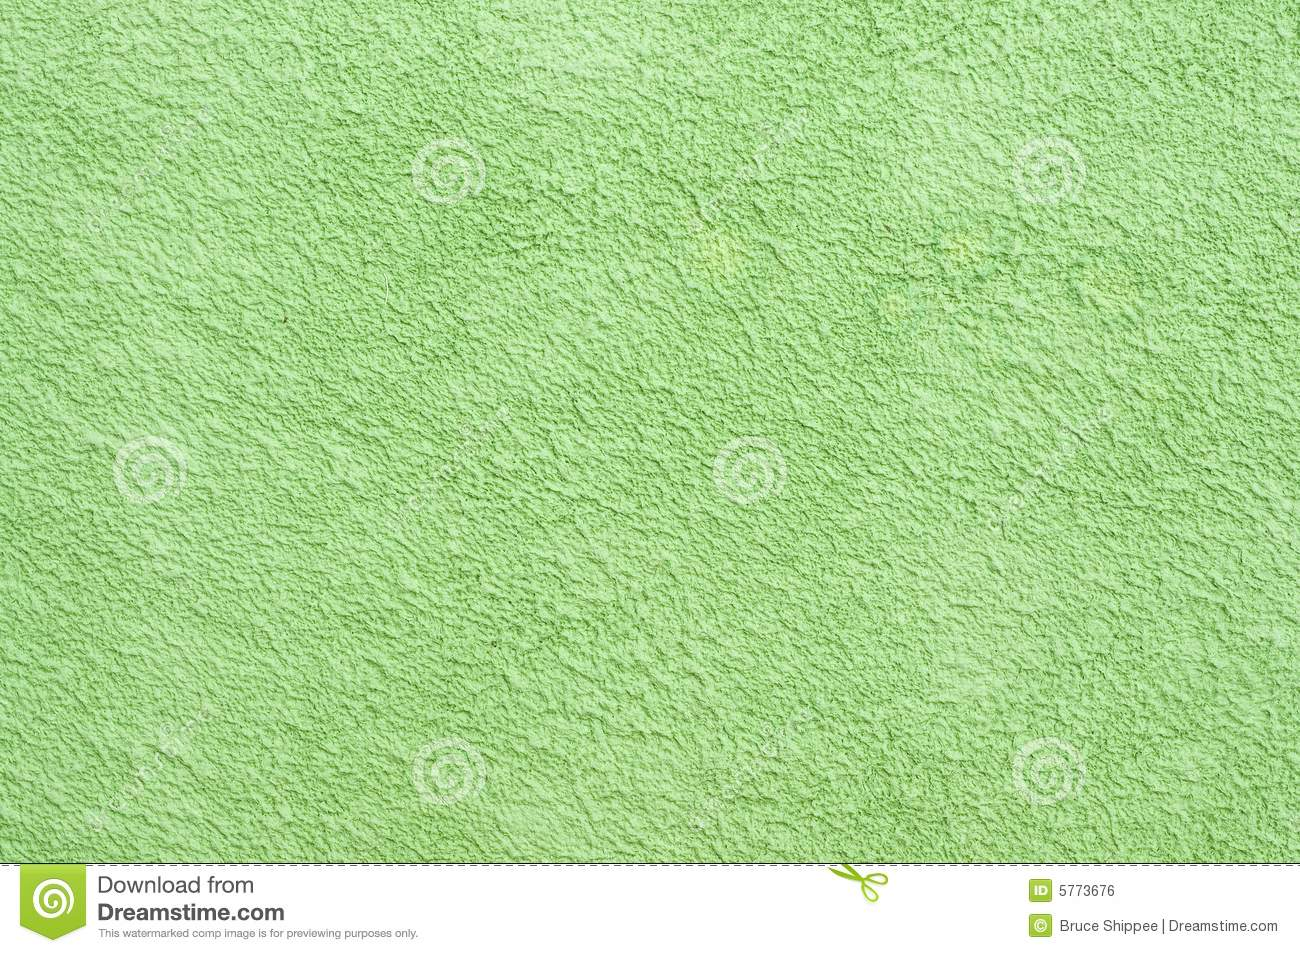 Stucco texture royalty free stock image image 5773676 for Lightweight stucco